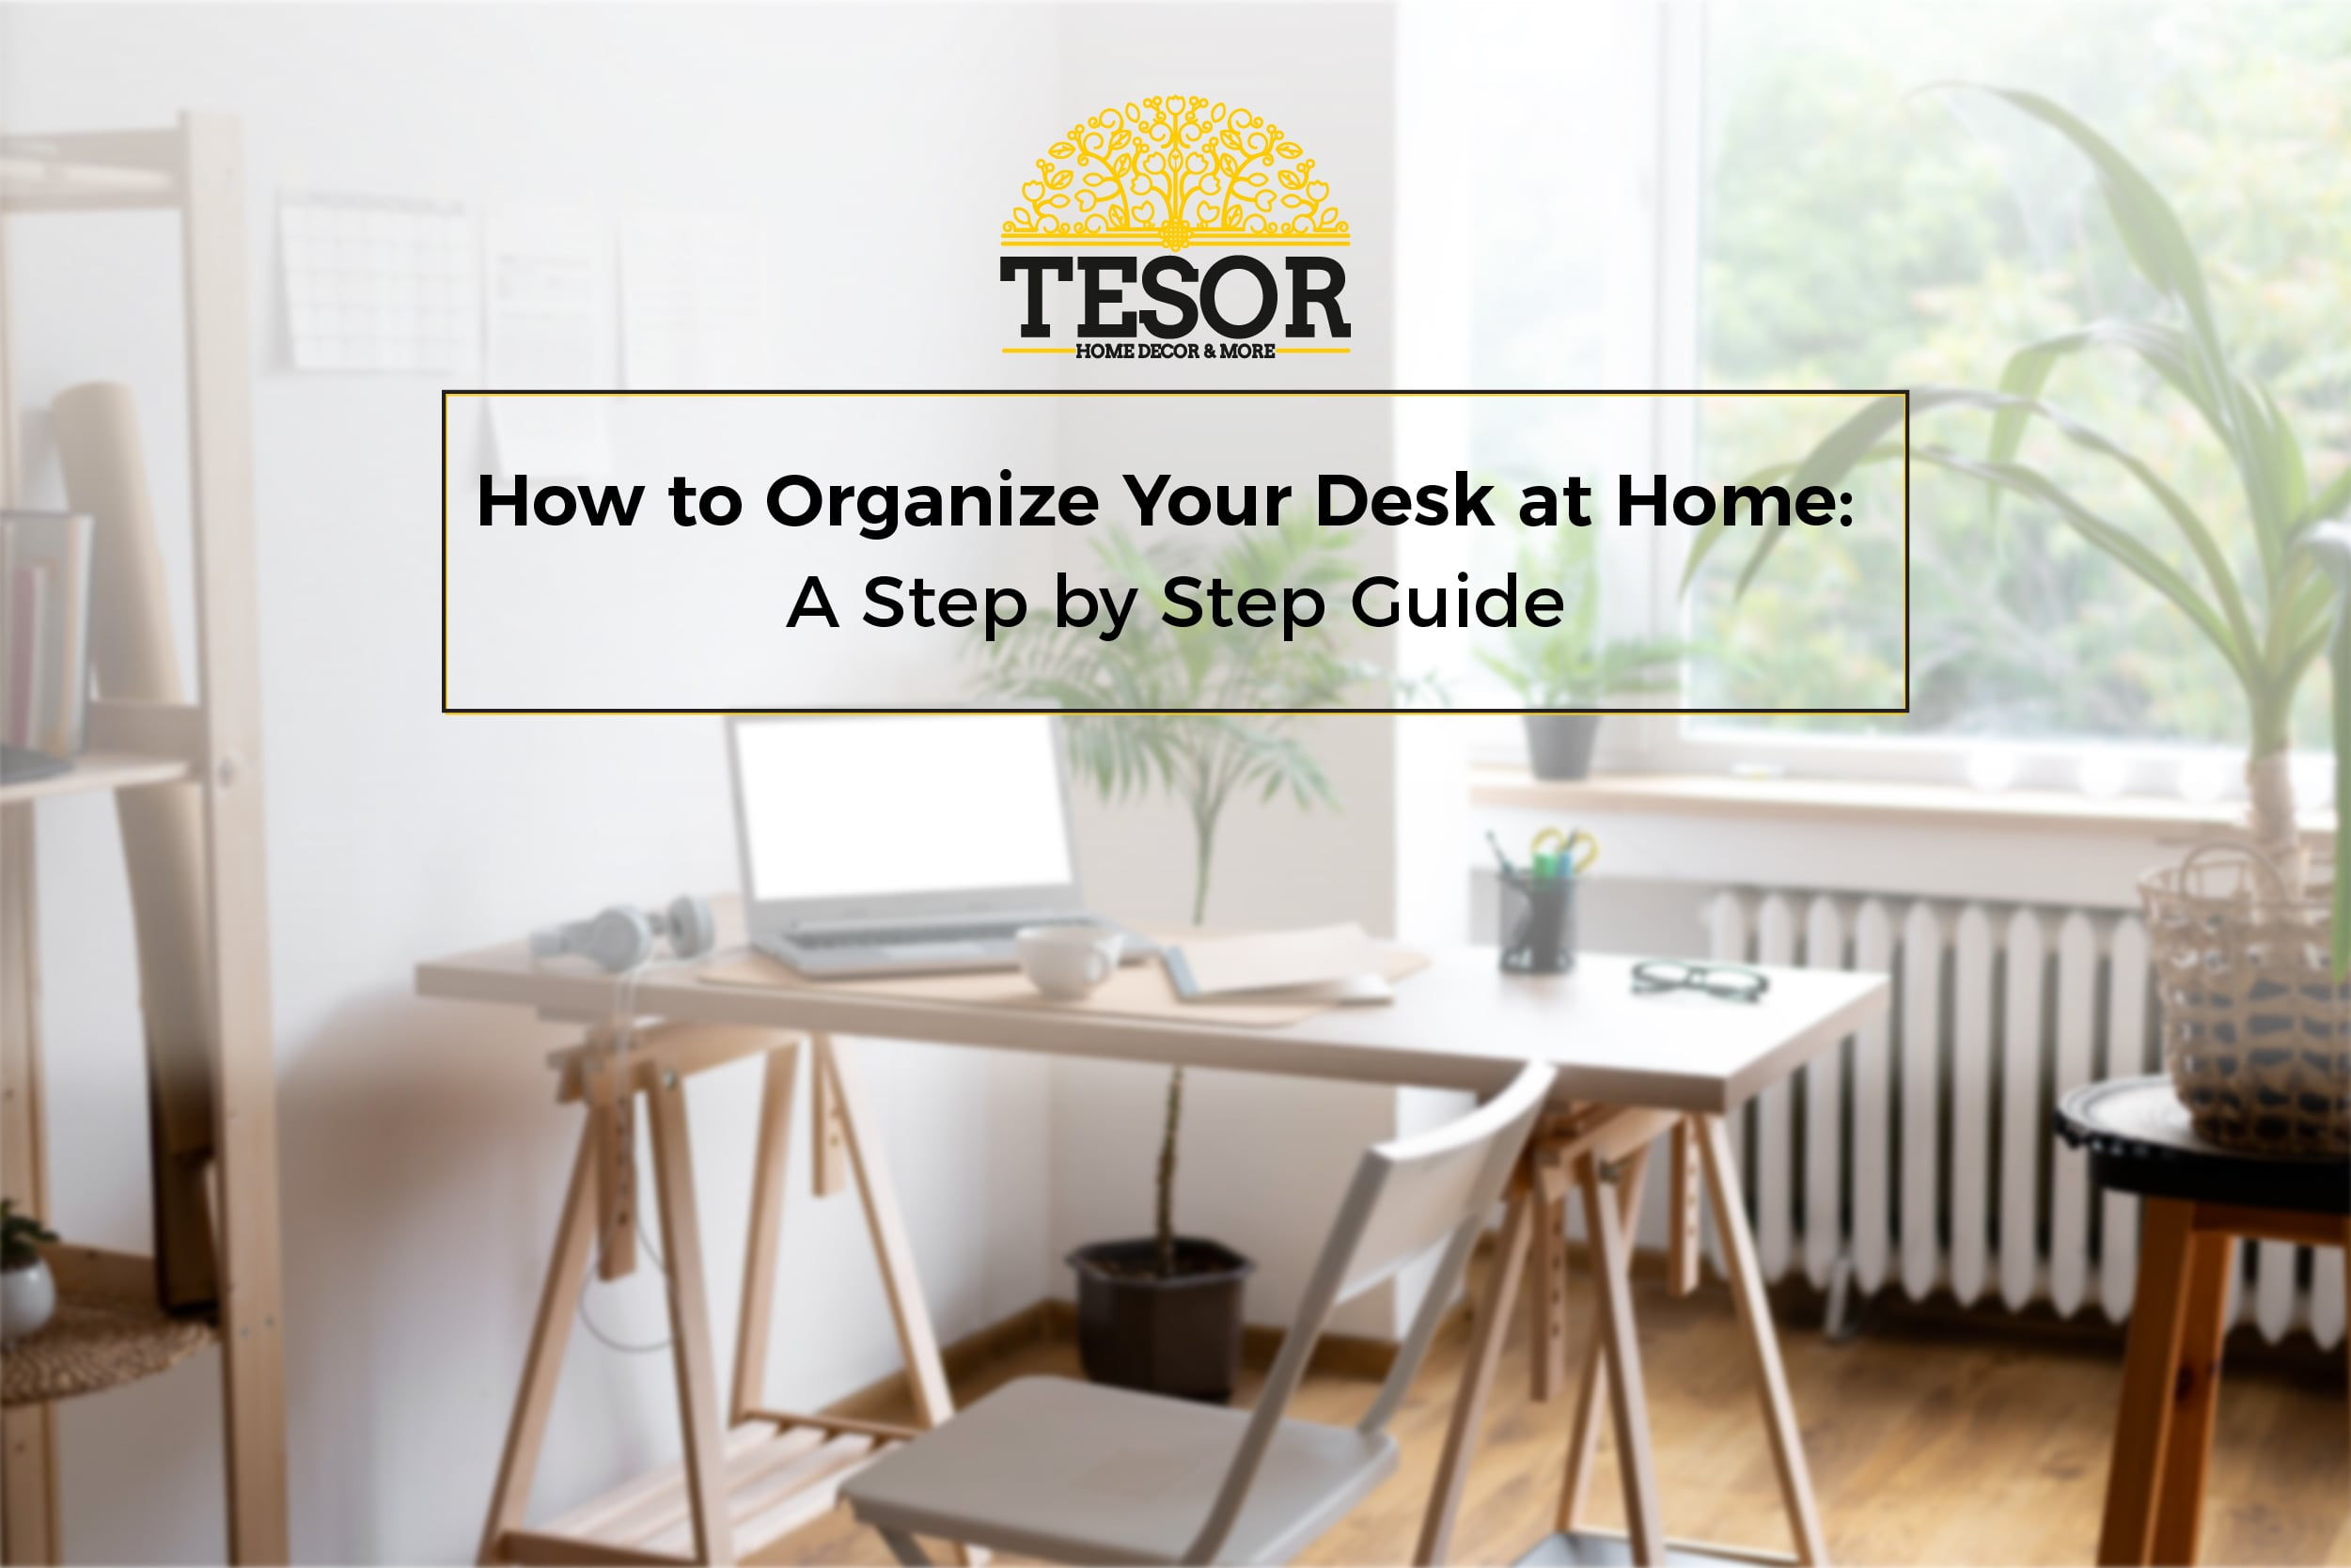 How to organize your desk at home